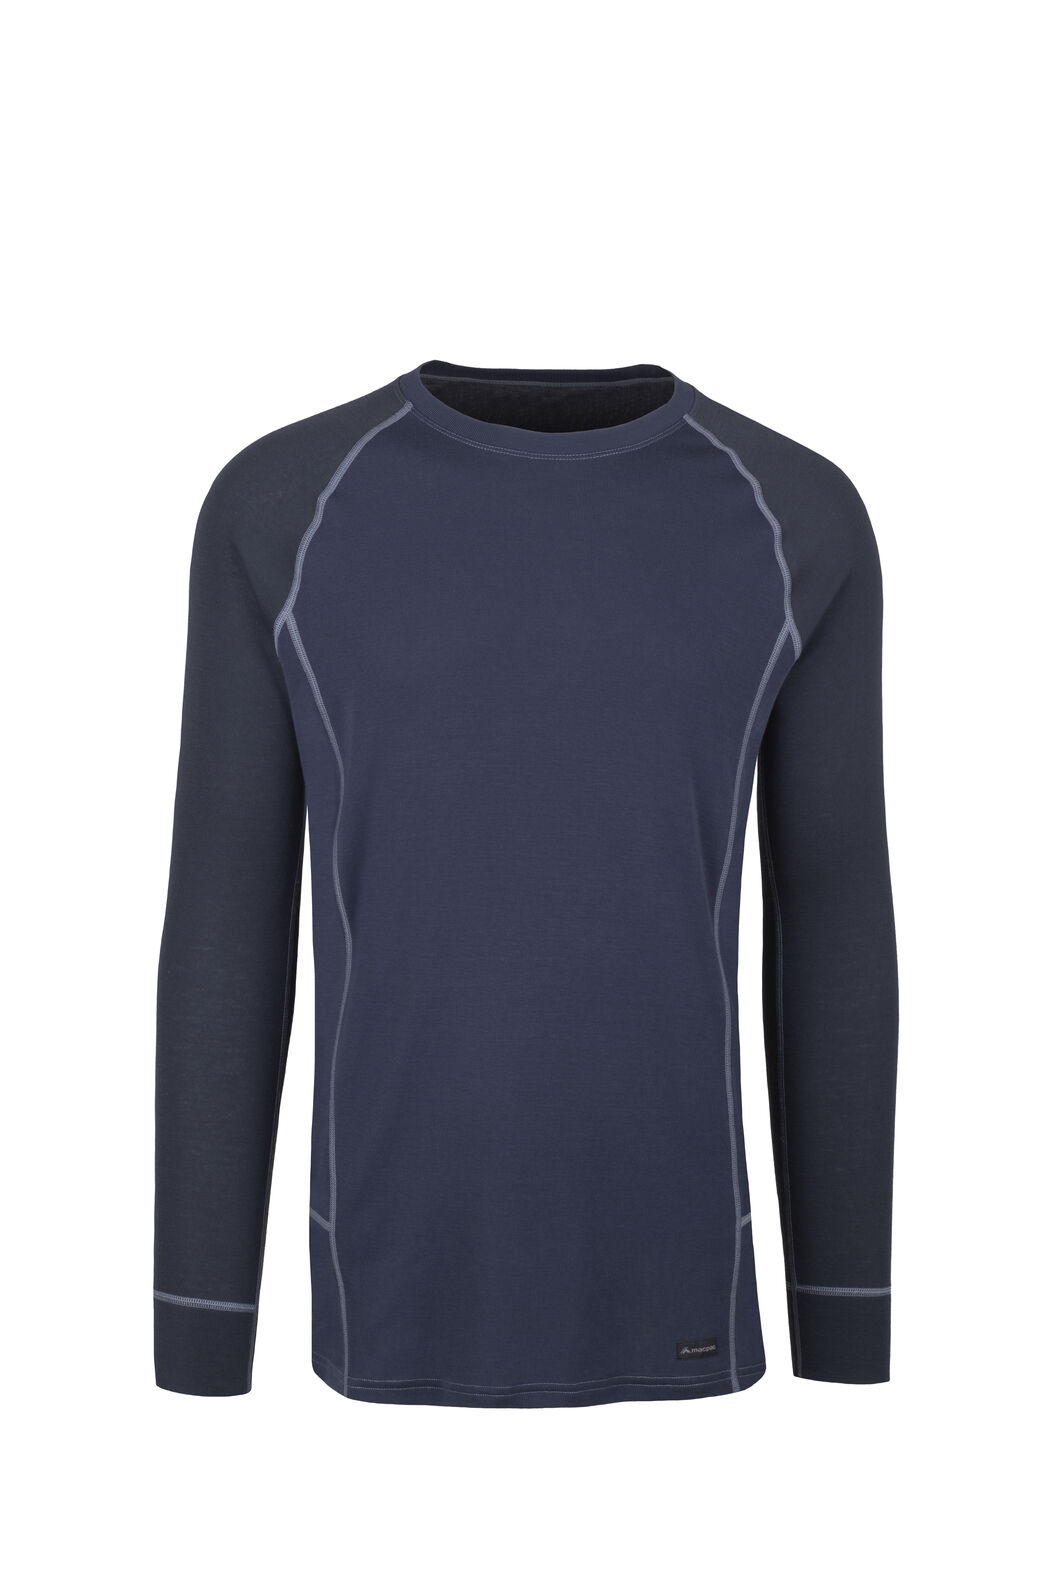 Macpac Geothermal Long Sleeve Top - Men's, Salute/Mood Indigo, hi-res